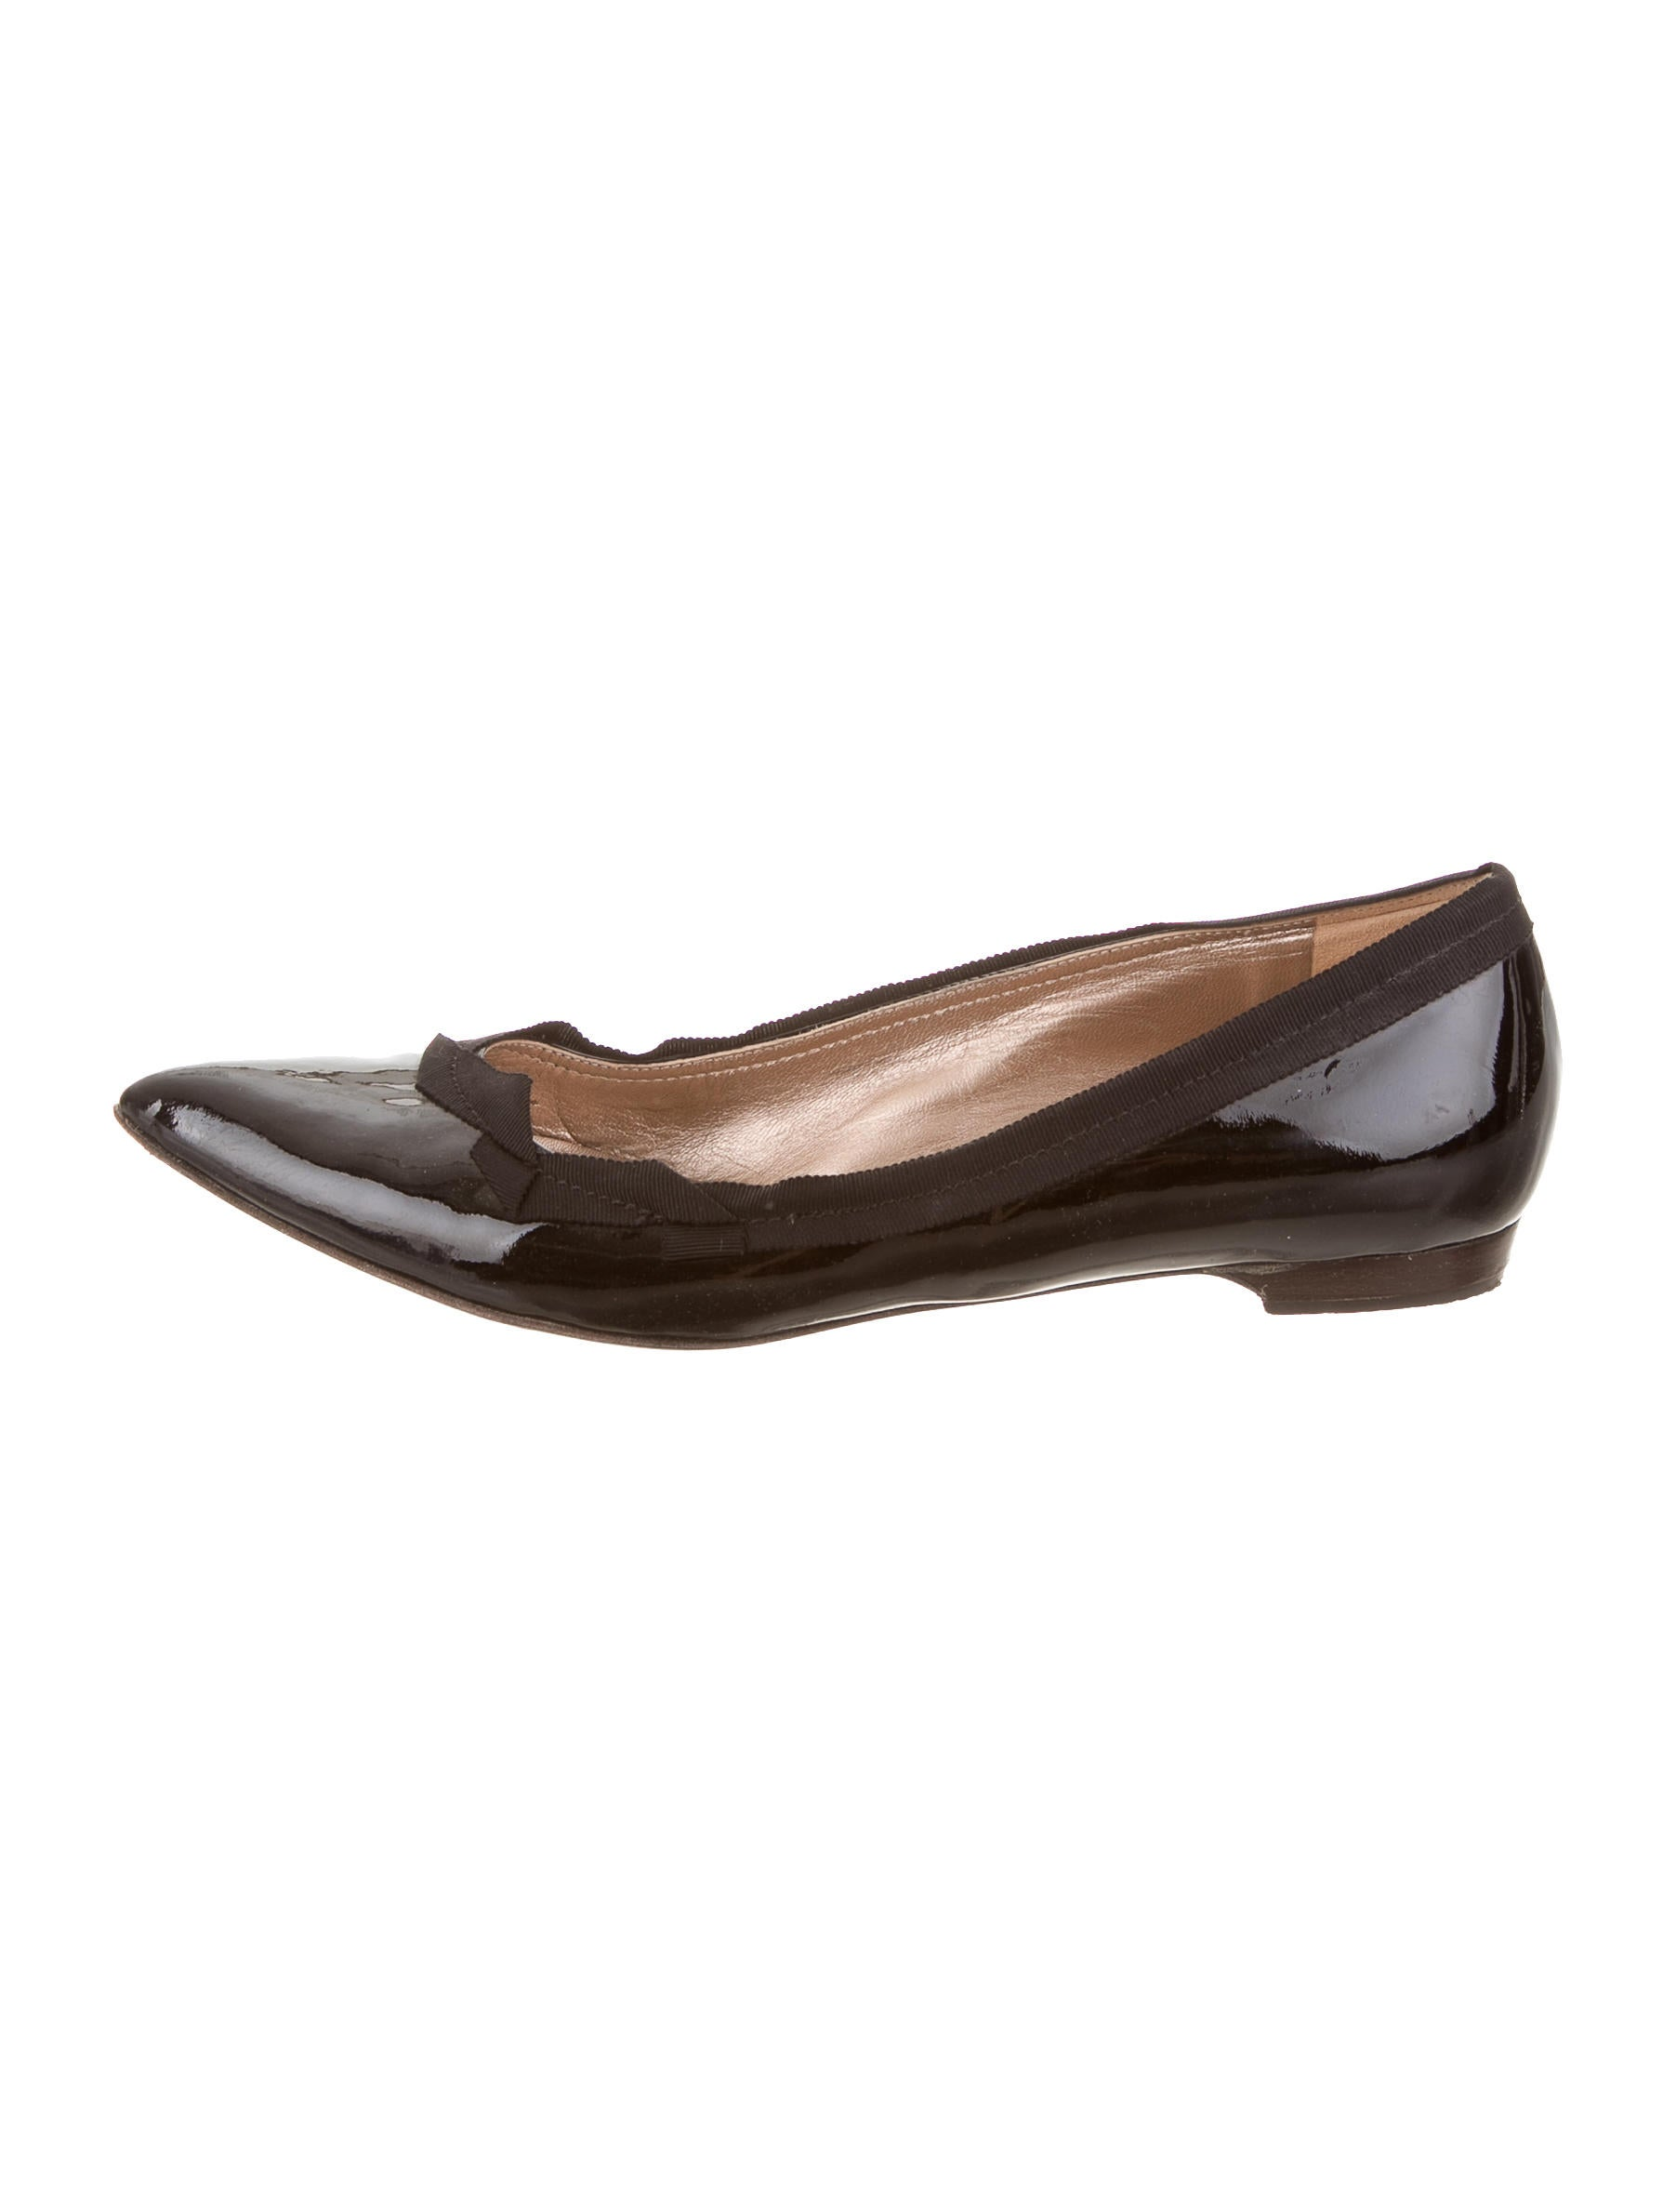 lanvin patent leather pointed toe flats shoes lan57393